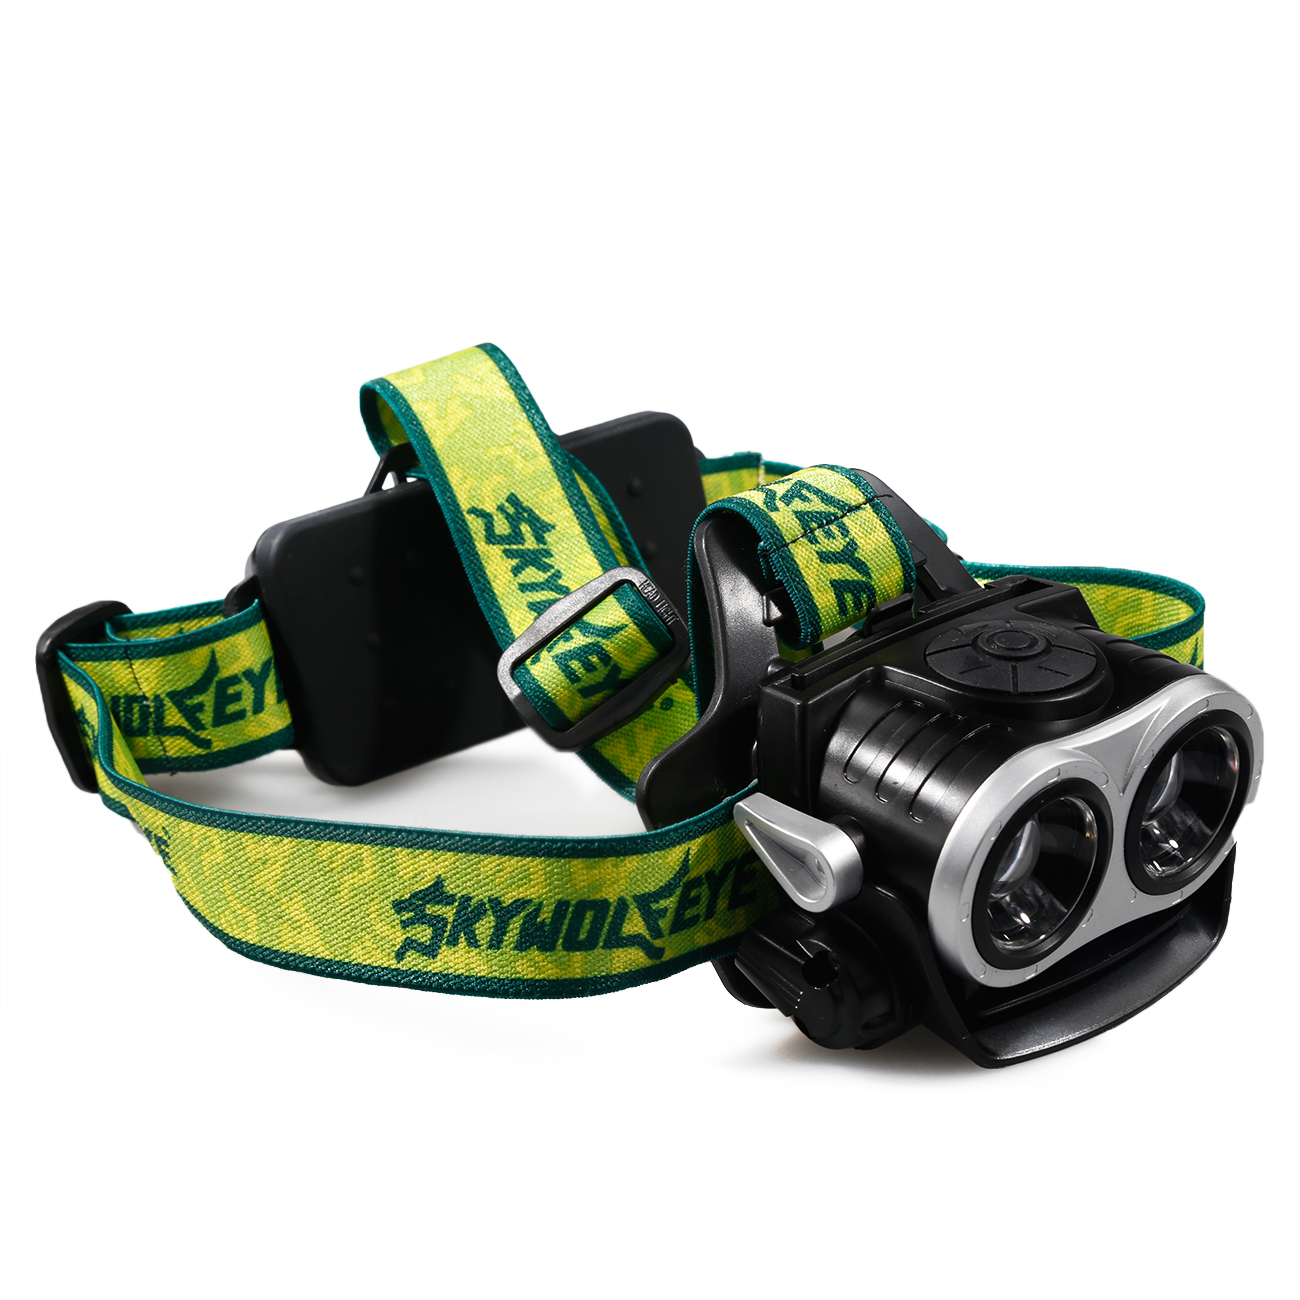 1000Lm LED Zoom Headlamp 2x XM L T6 Headlight 3 Modes Head light Lamp USB Charger